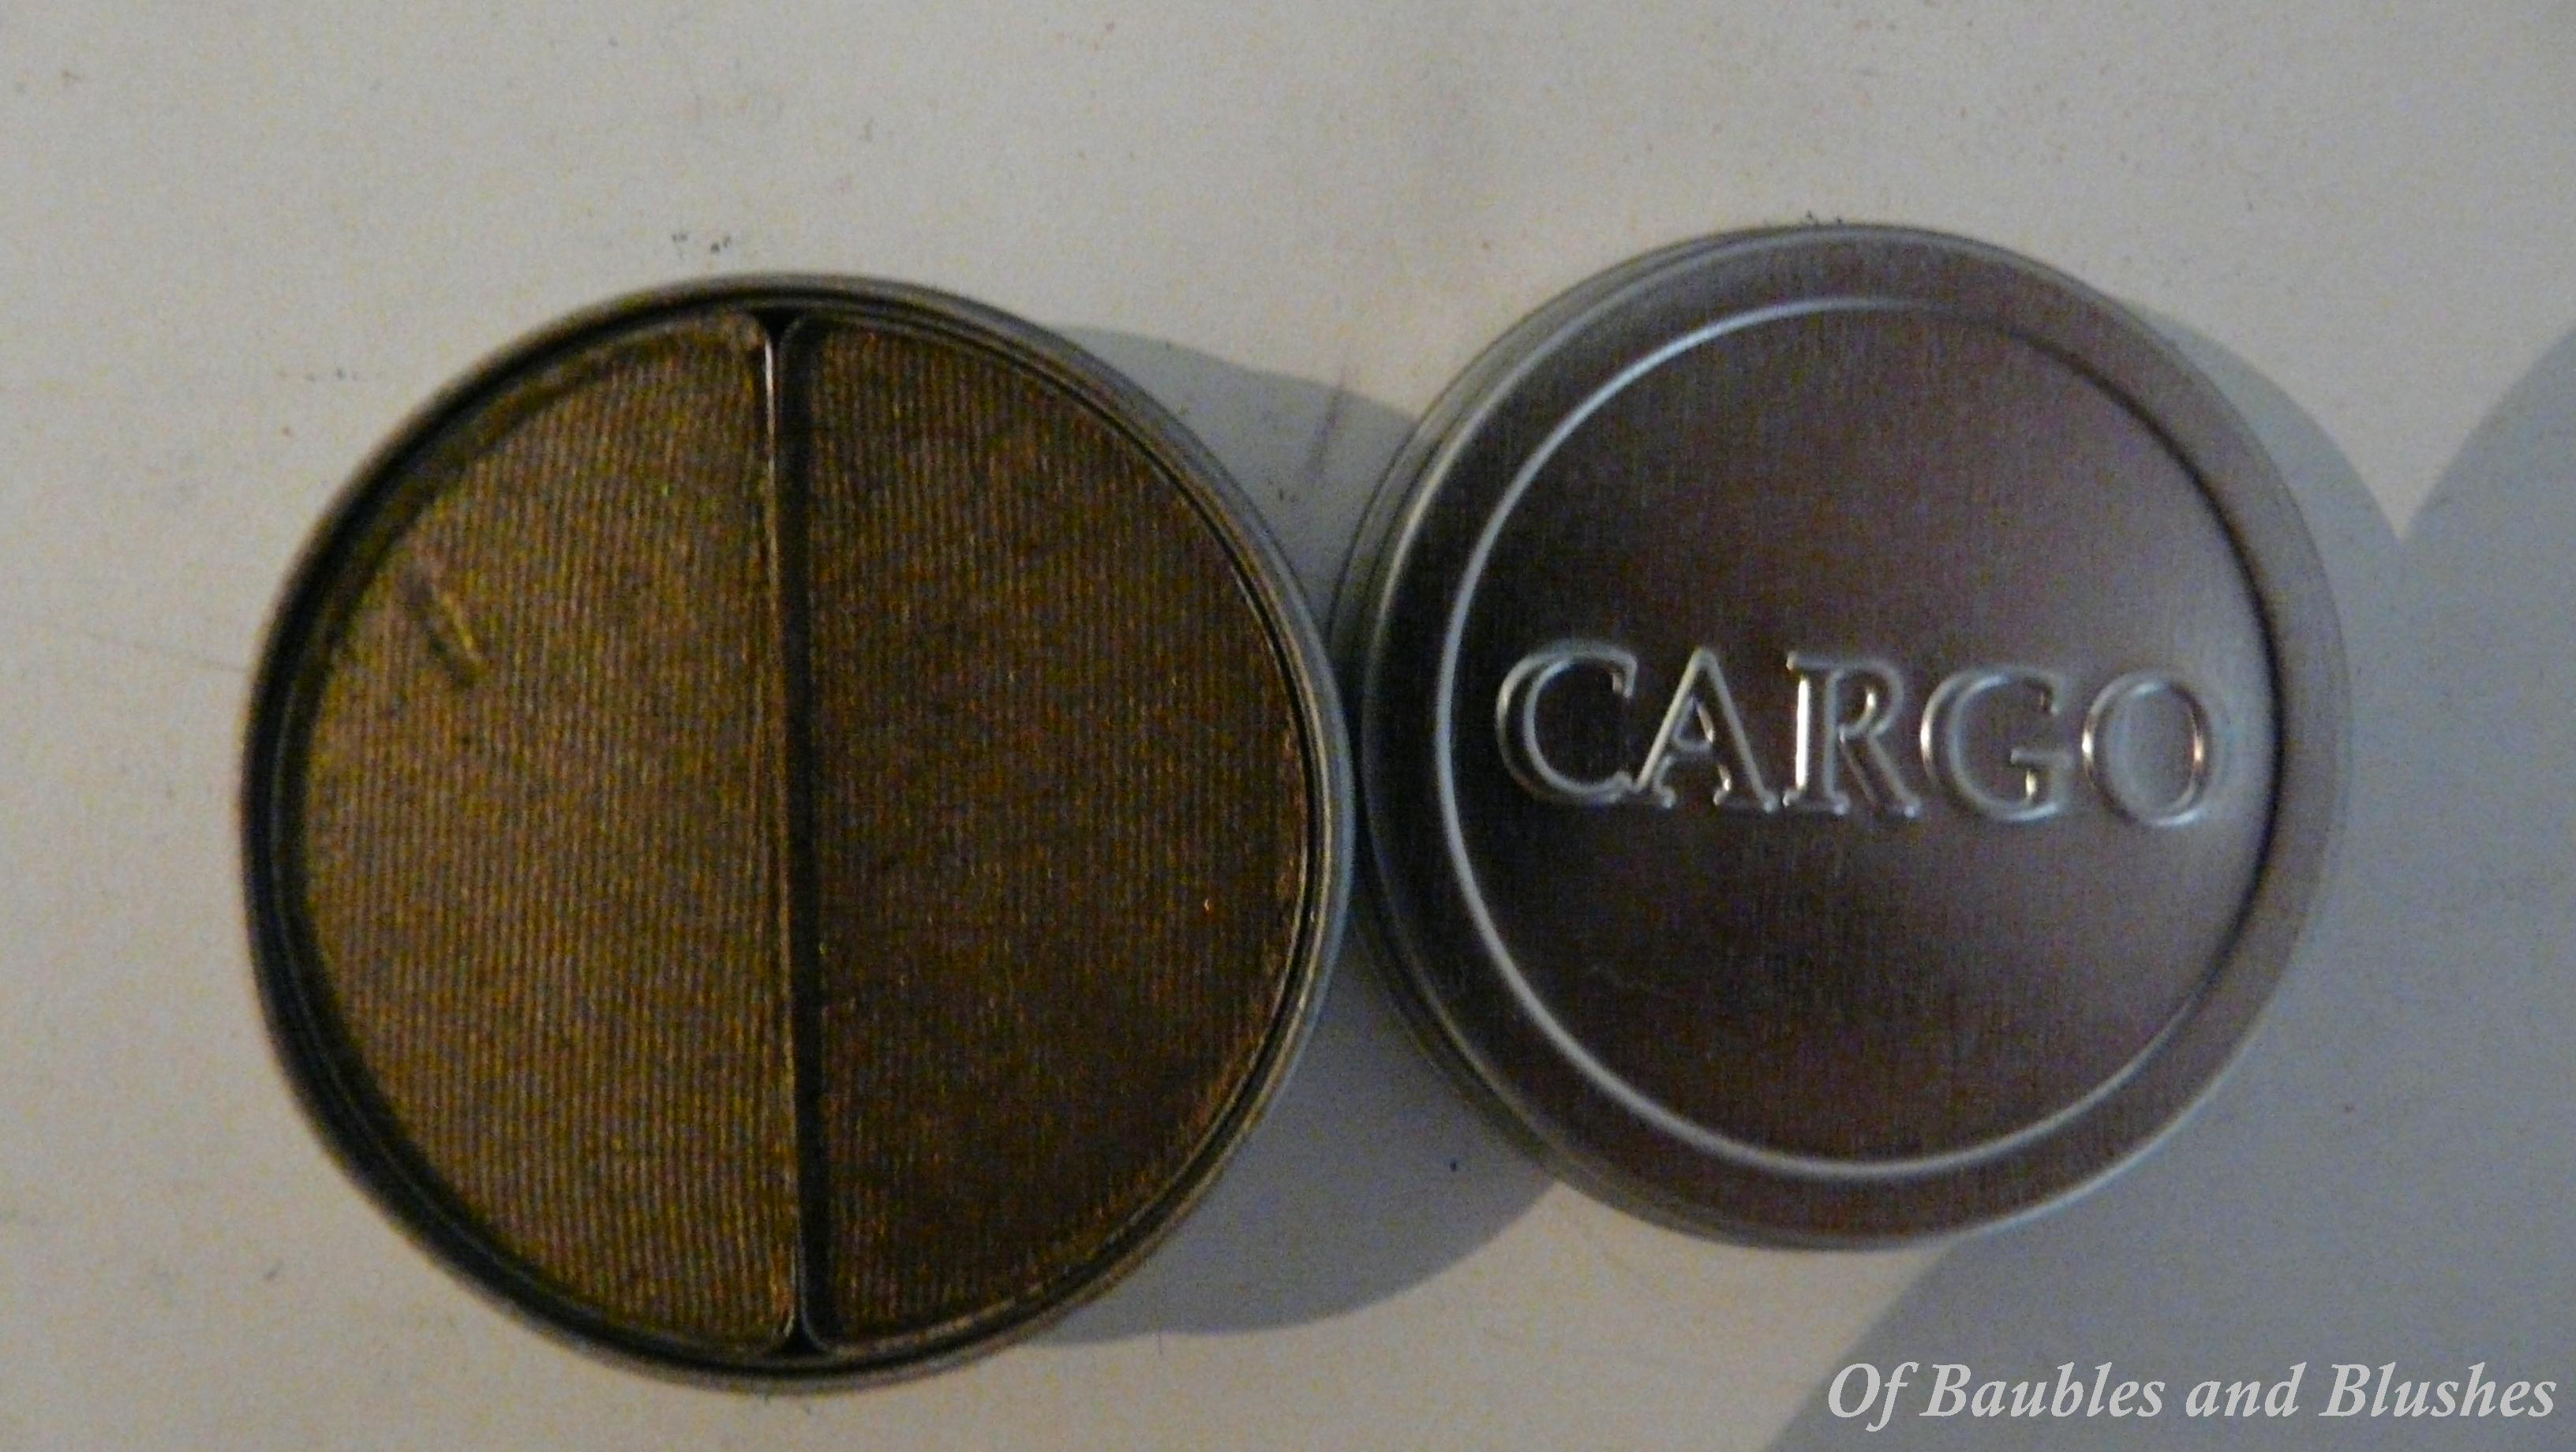 Cargo eyeshadow Oregon